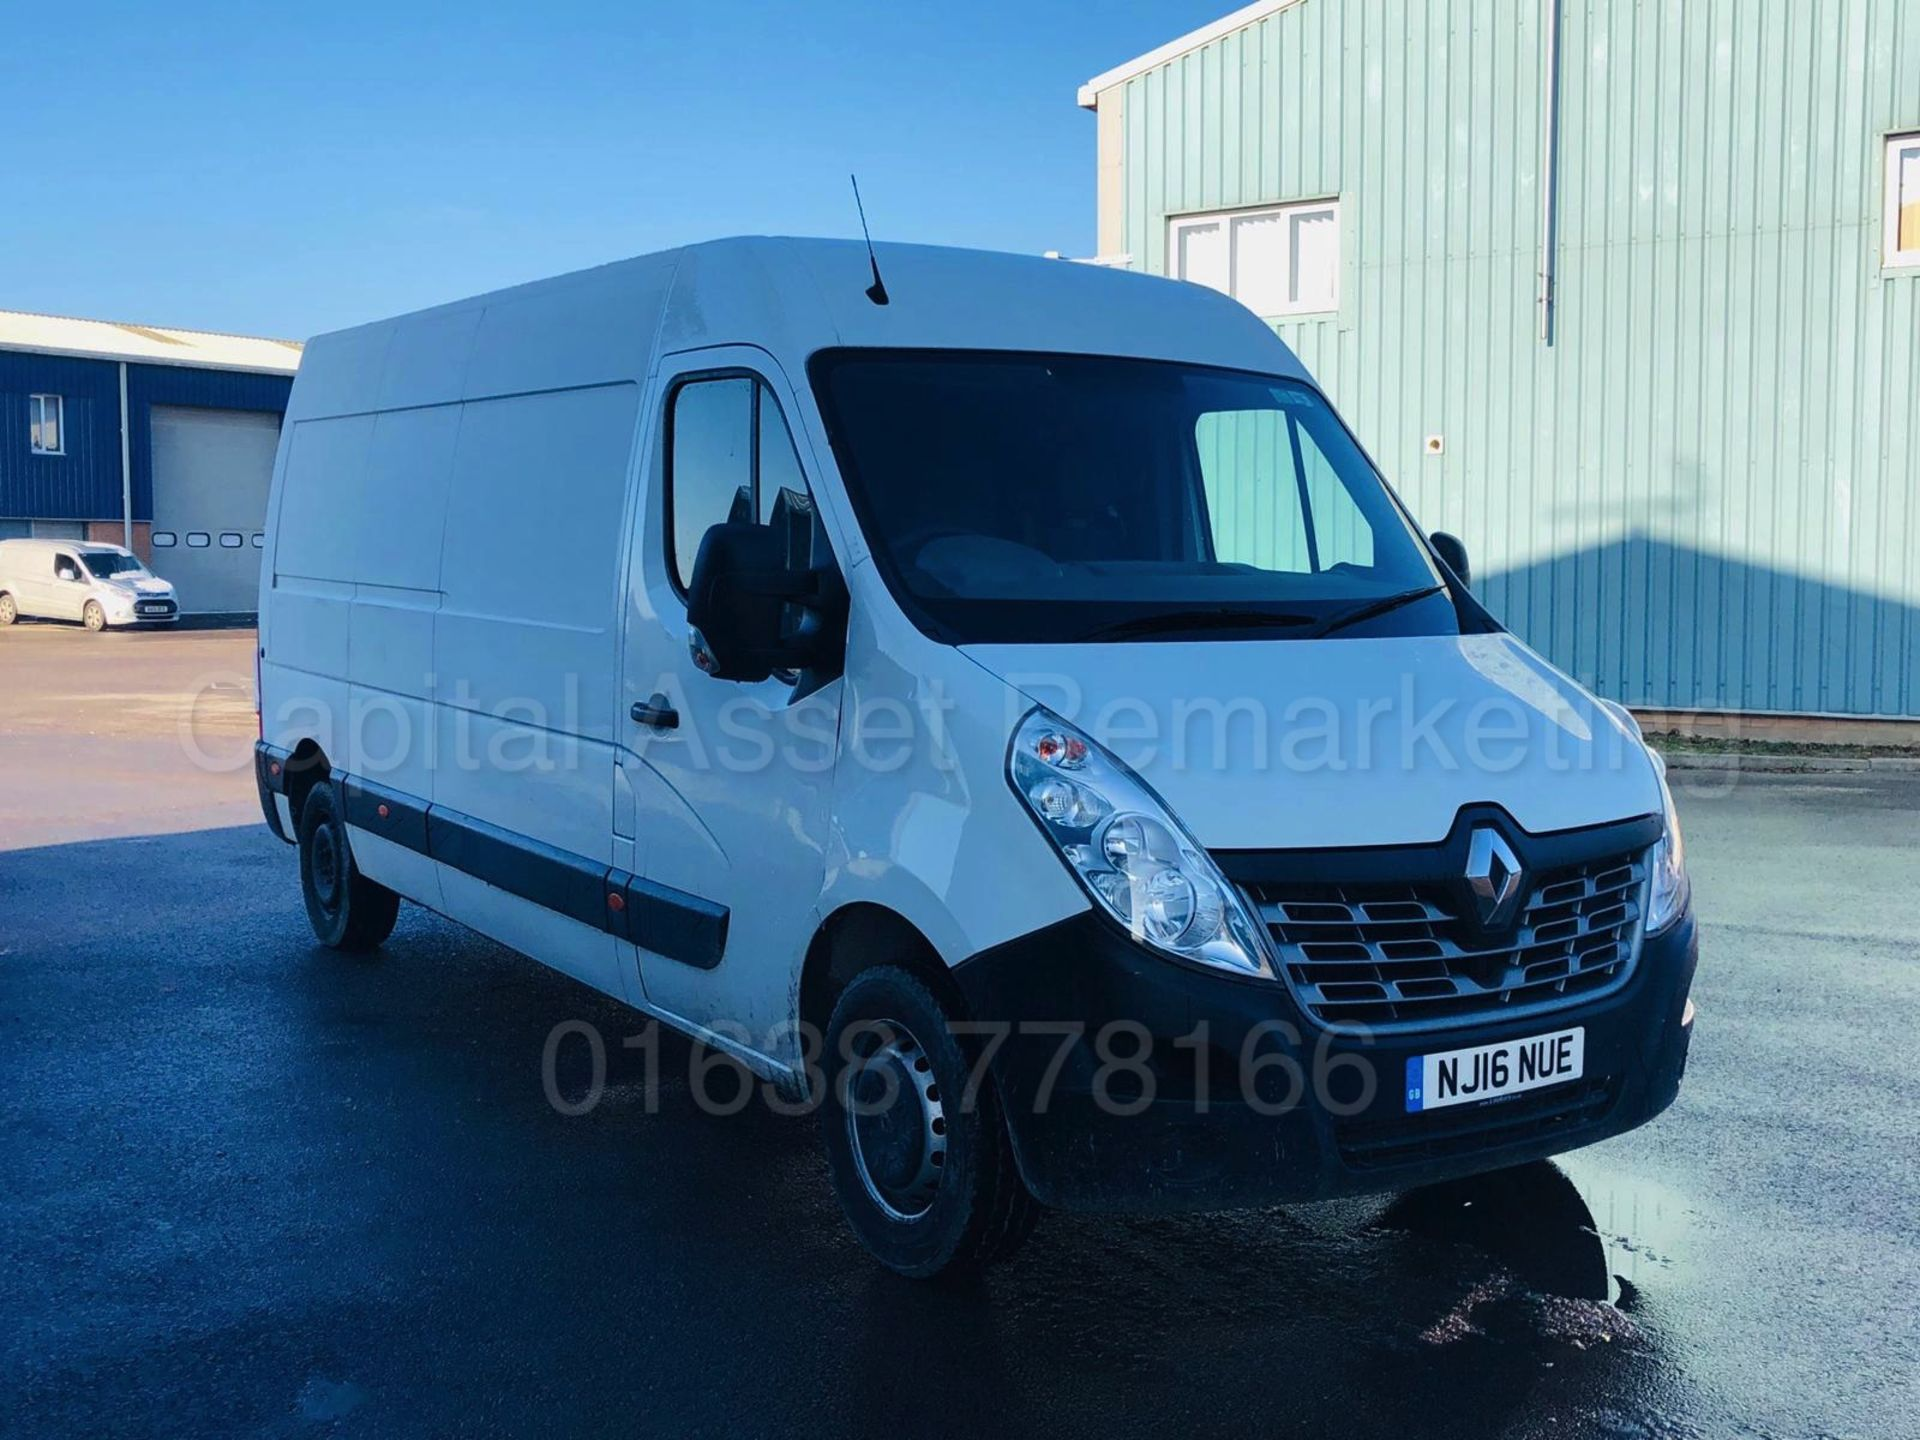 Lot 16 - RENAULT MASTER LM35 *LWB - BUSINESS EDITION* (2016) '2.3 DCI - 110 BHP - 6 SPEED' *ULTRA LOW MILES*